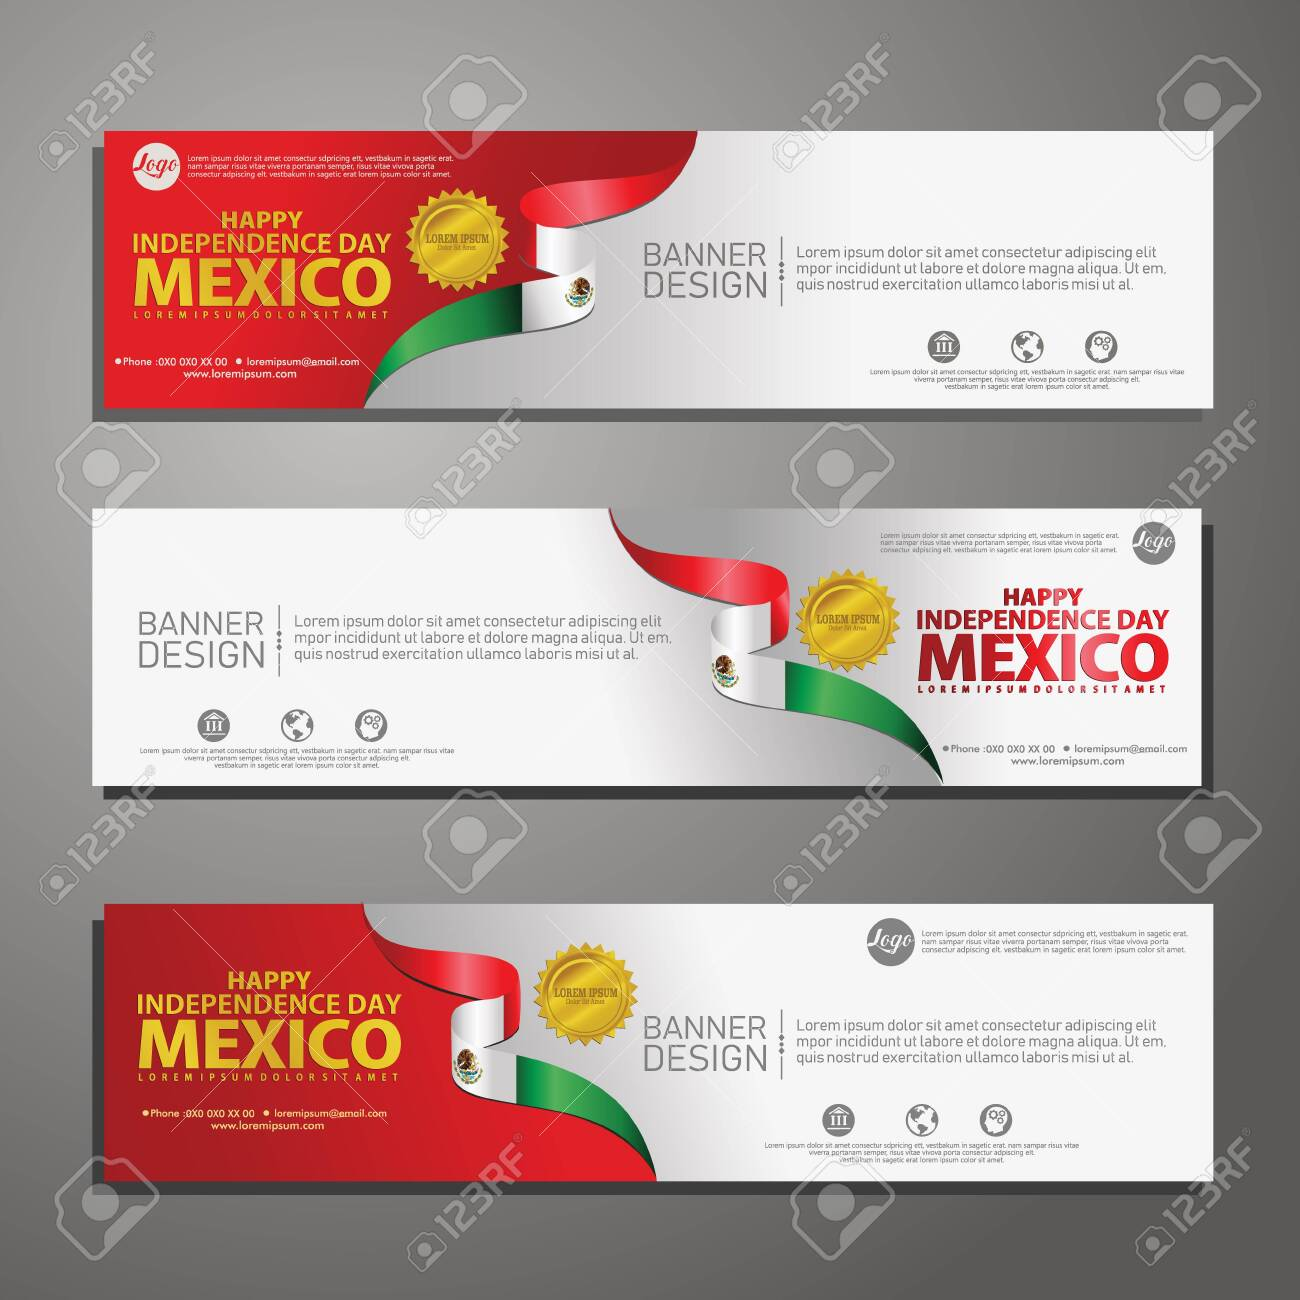 Happy Mexico Independence Day Banner And Background Set For Royalty Free Cliparts Vectors And Stock Illustration Image 130405639